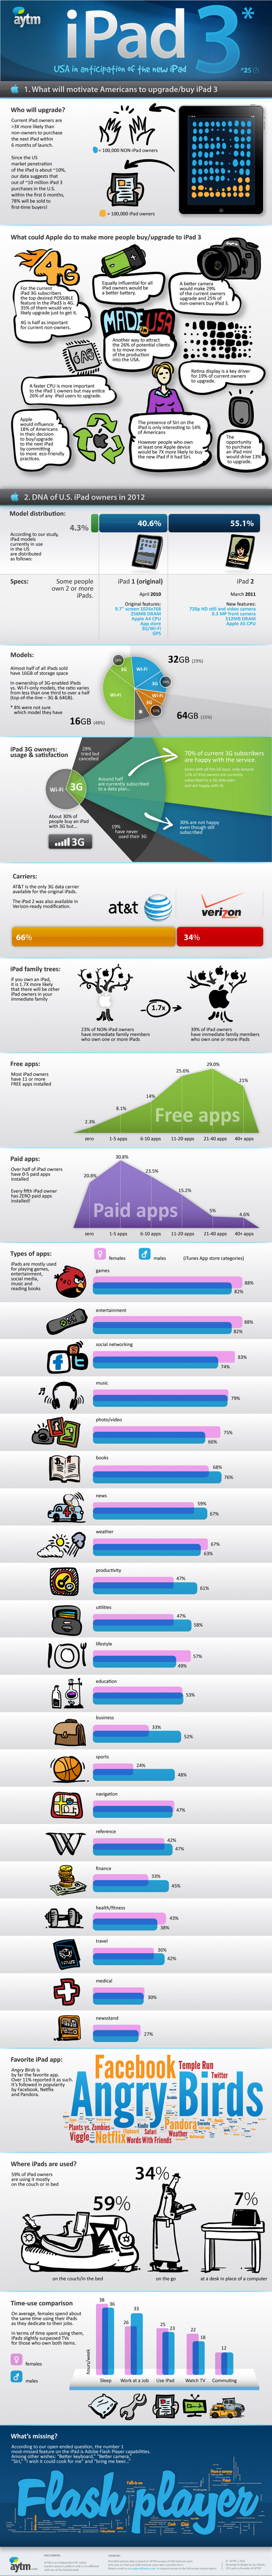 iPad 3: Who Will Buy One, and Why? Infographic